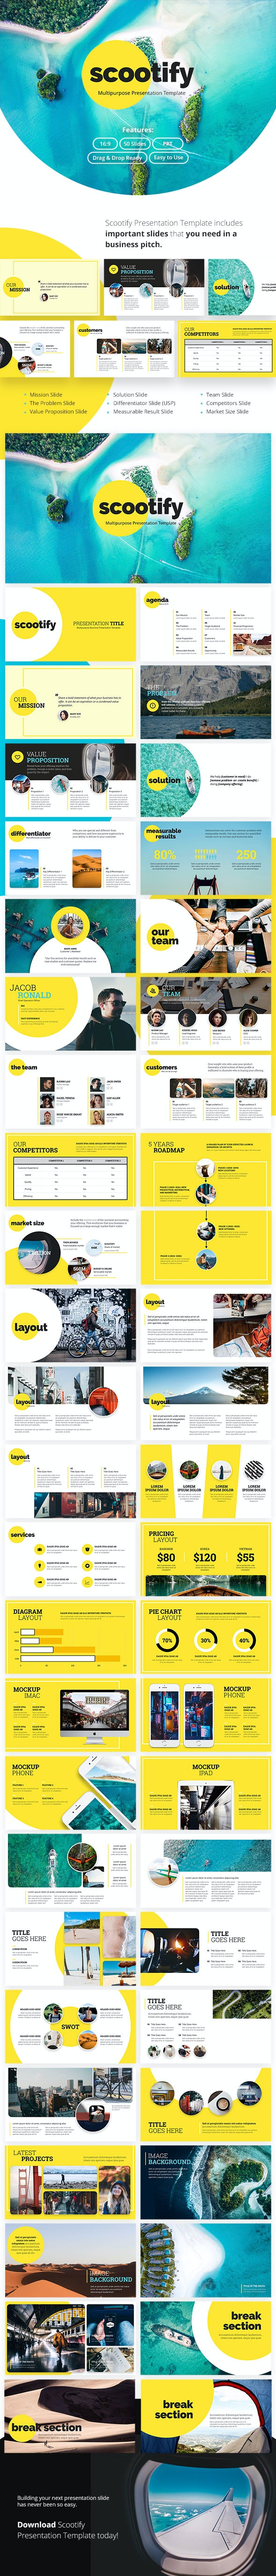 Scootify Powerpoint Business Presentation Template - PowerPoint Templates Presentation Templates